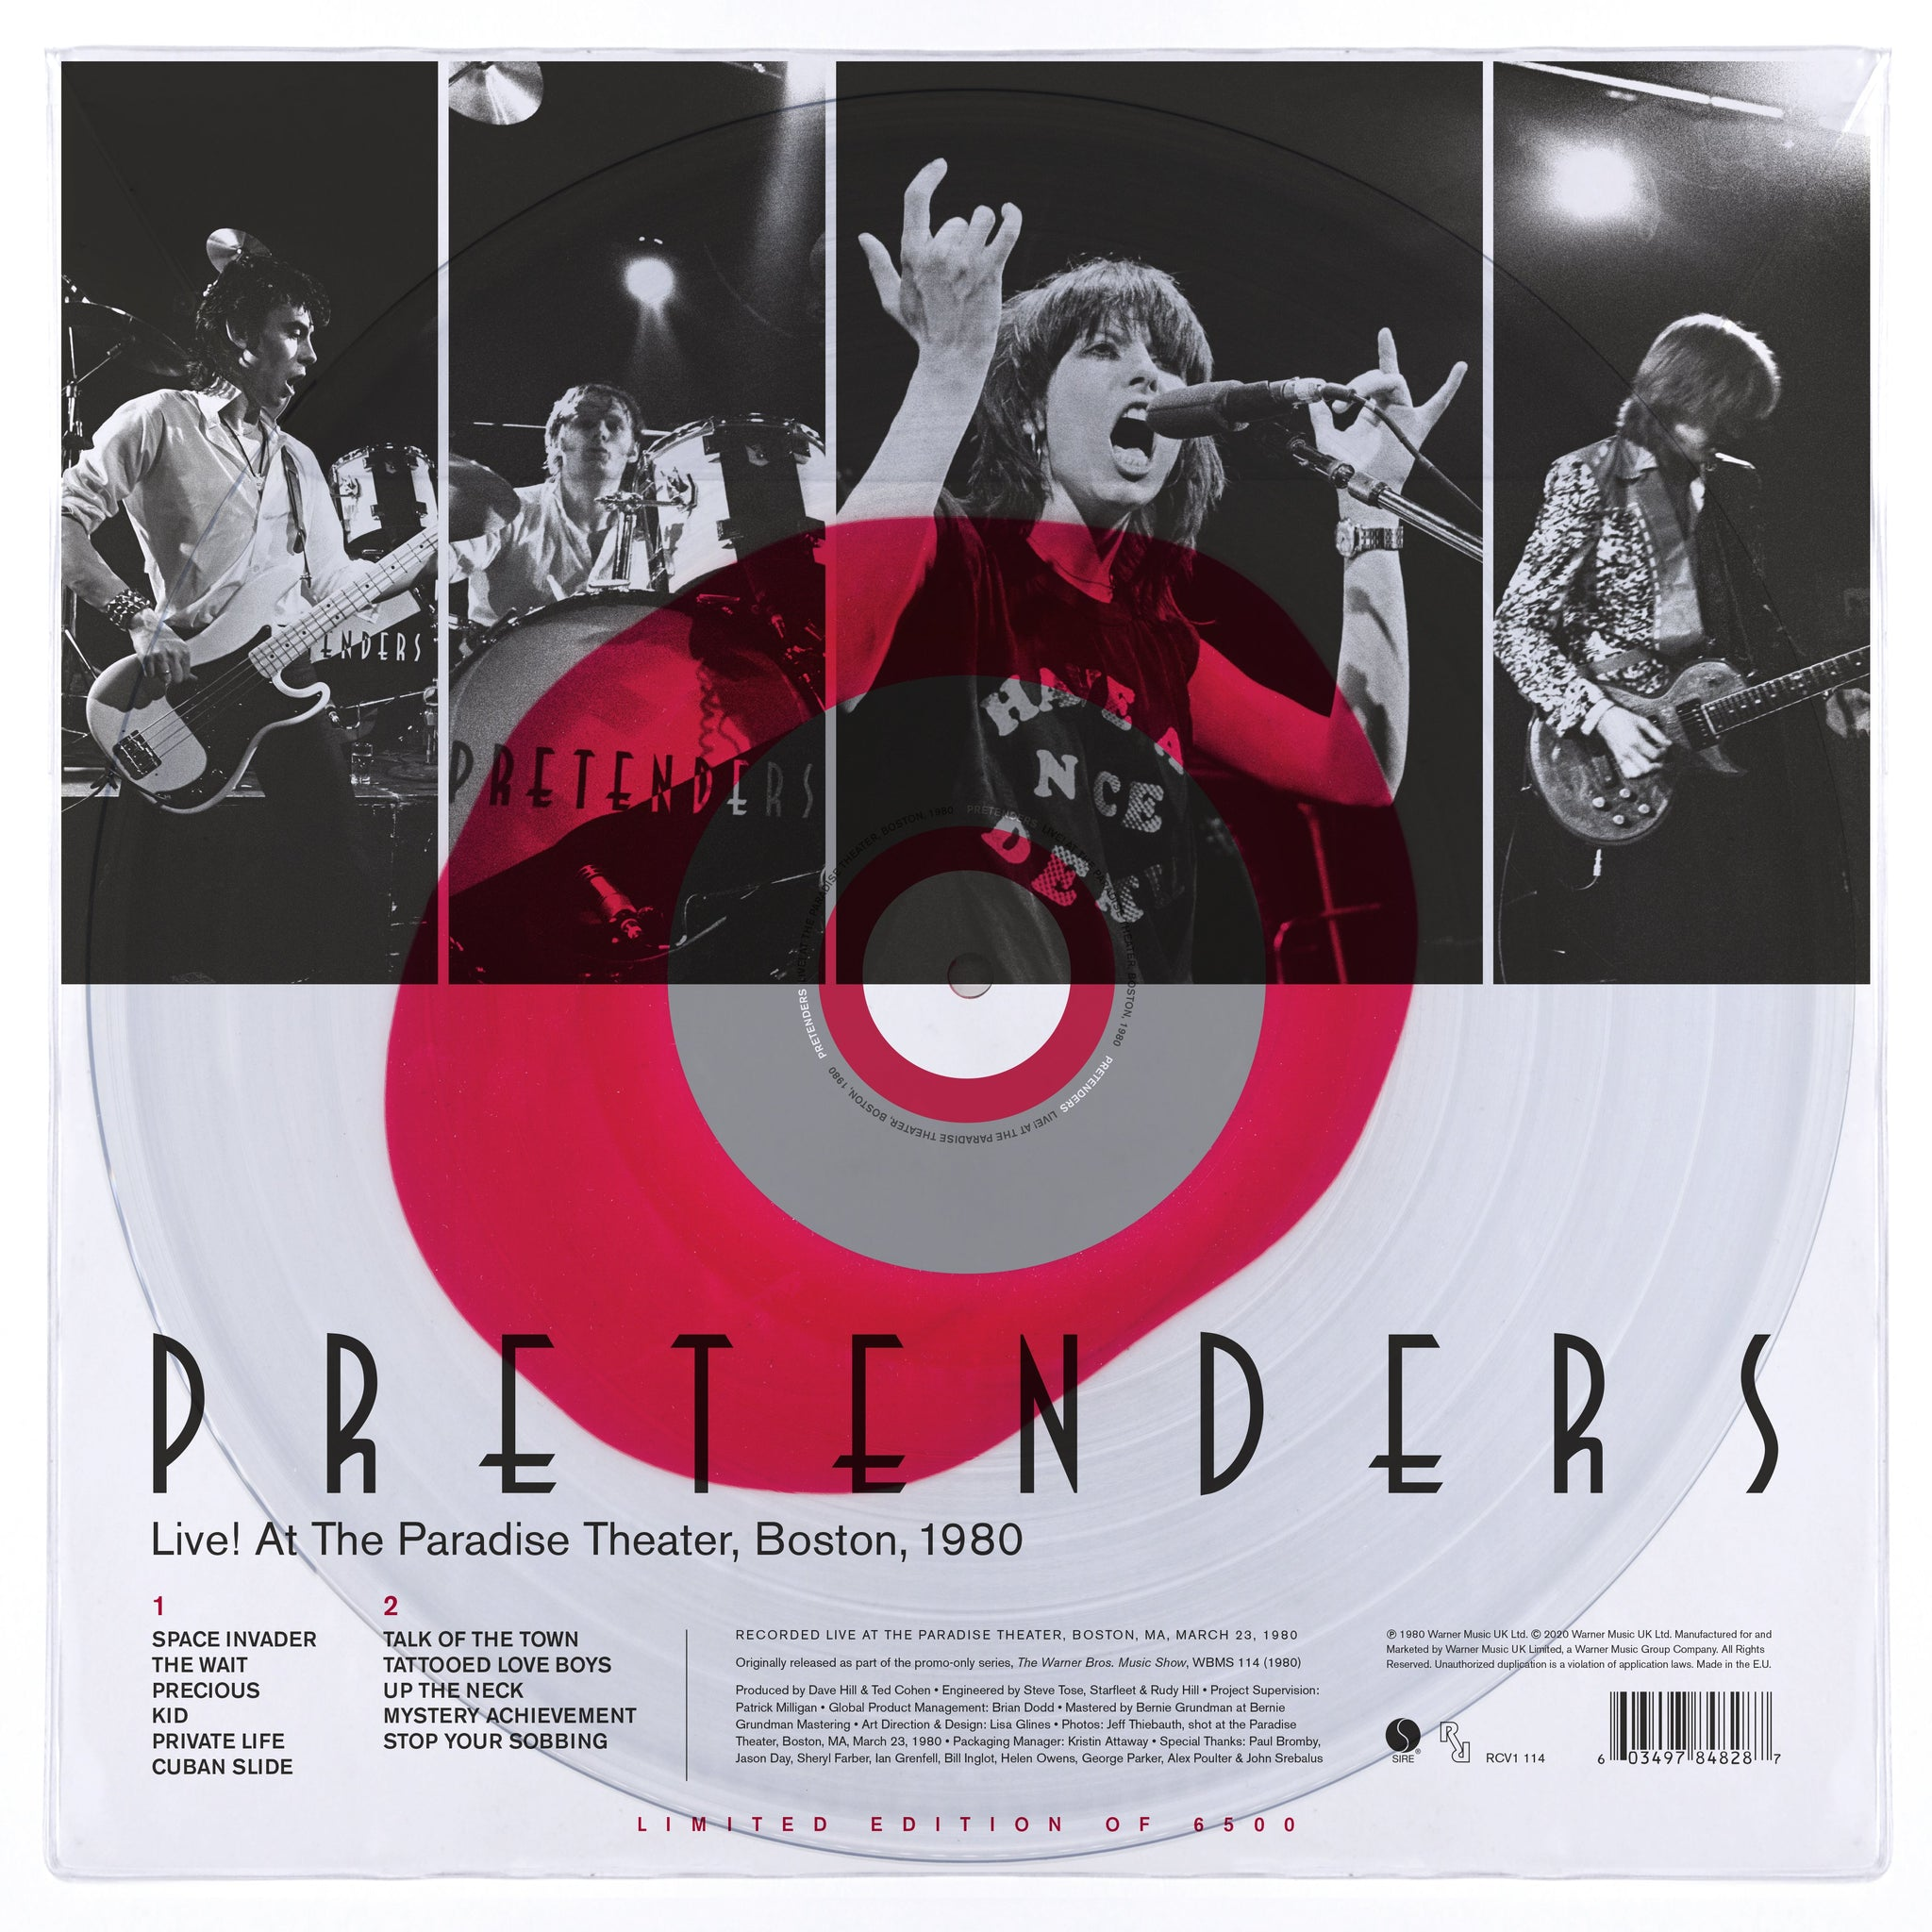 Pretenders - Live! At The Paradise Theater, Boston 1980